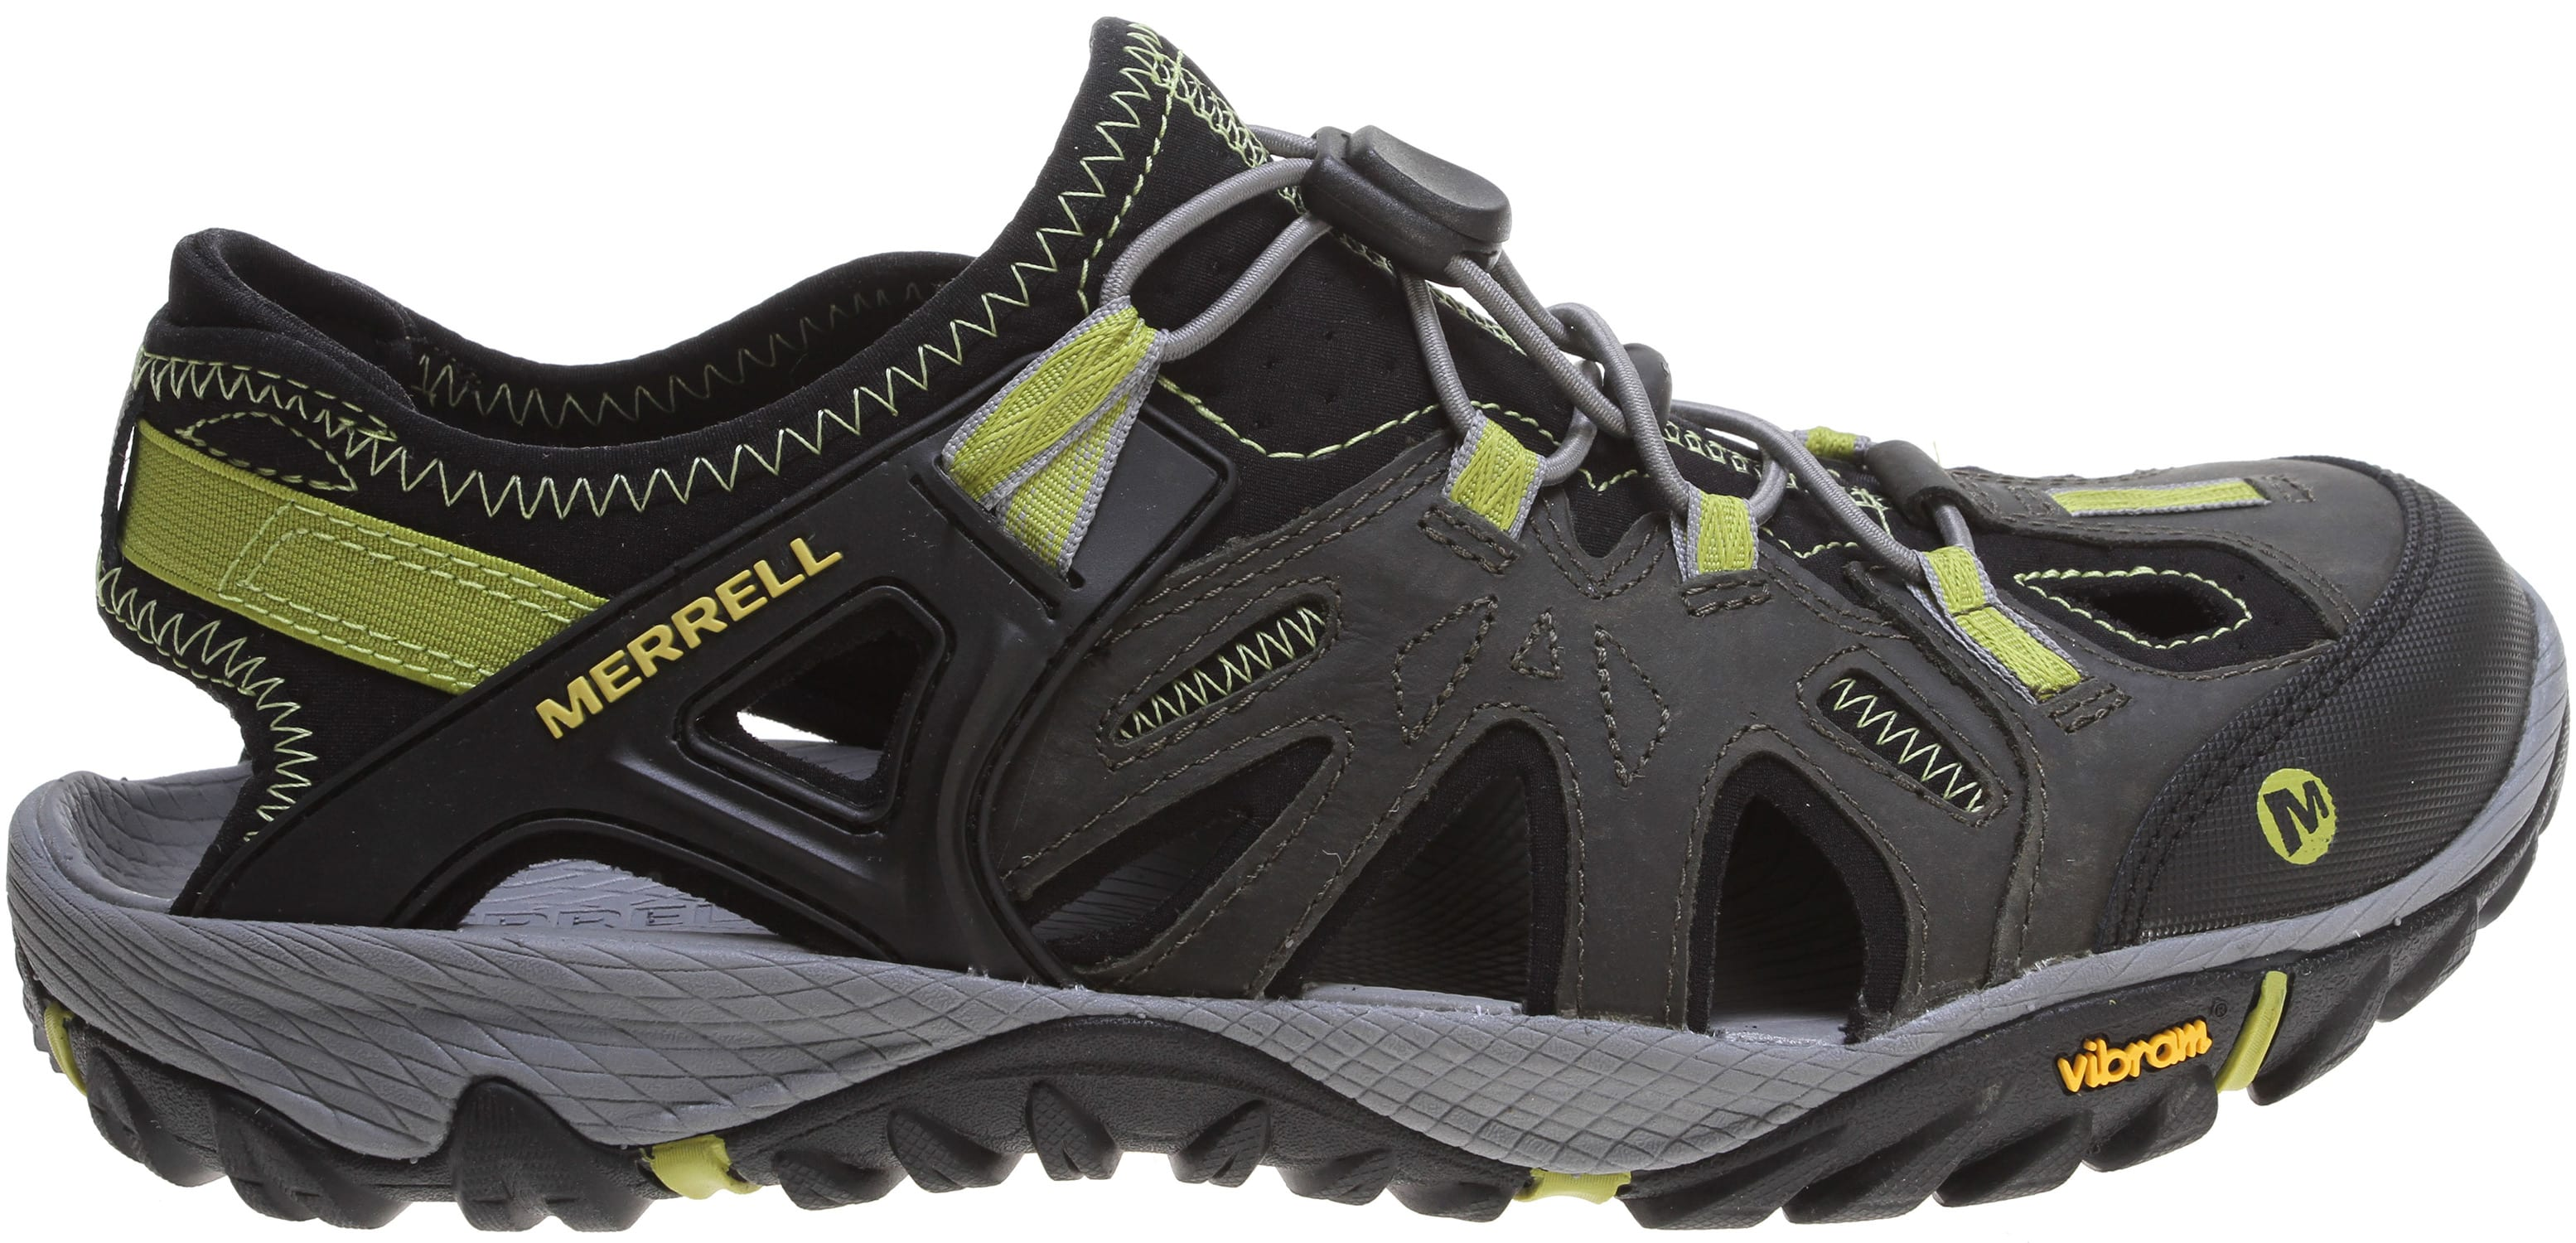 bd8c83dcc5d Merrell All Out Blaze Sieve Hiking Shoes